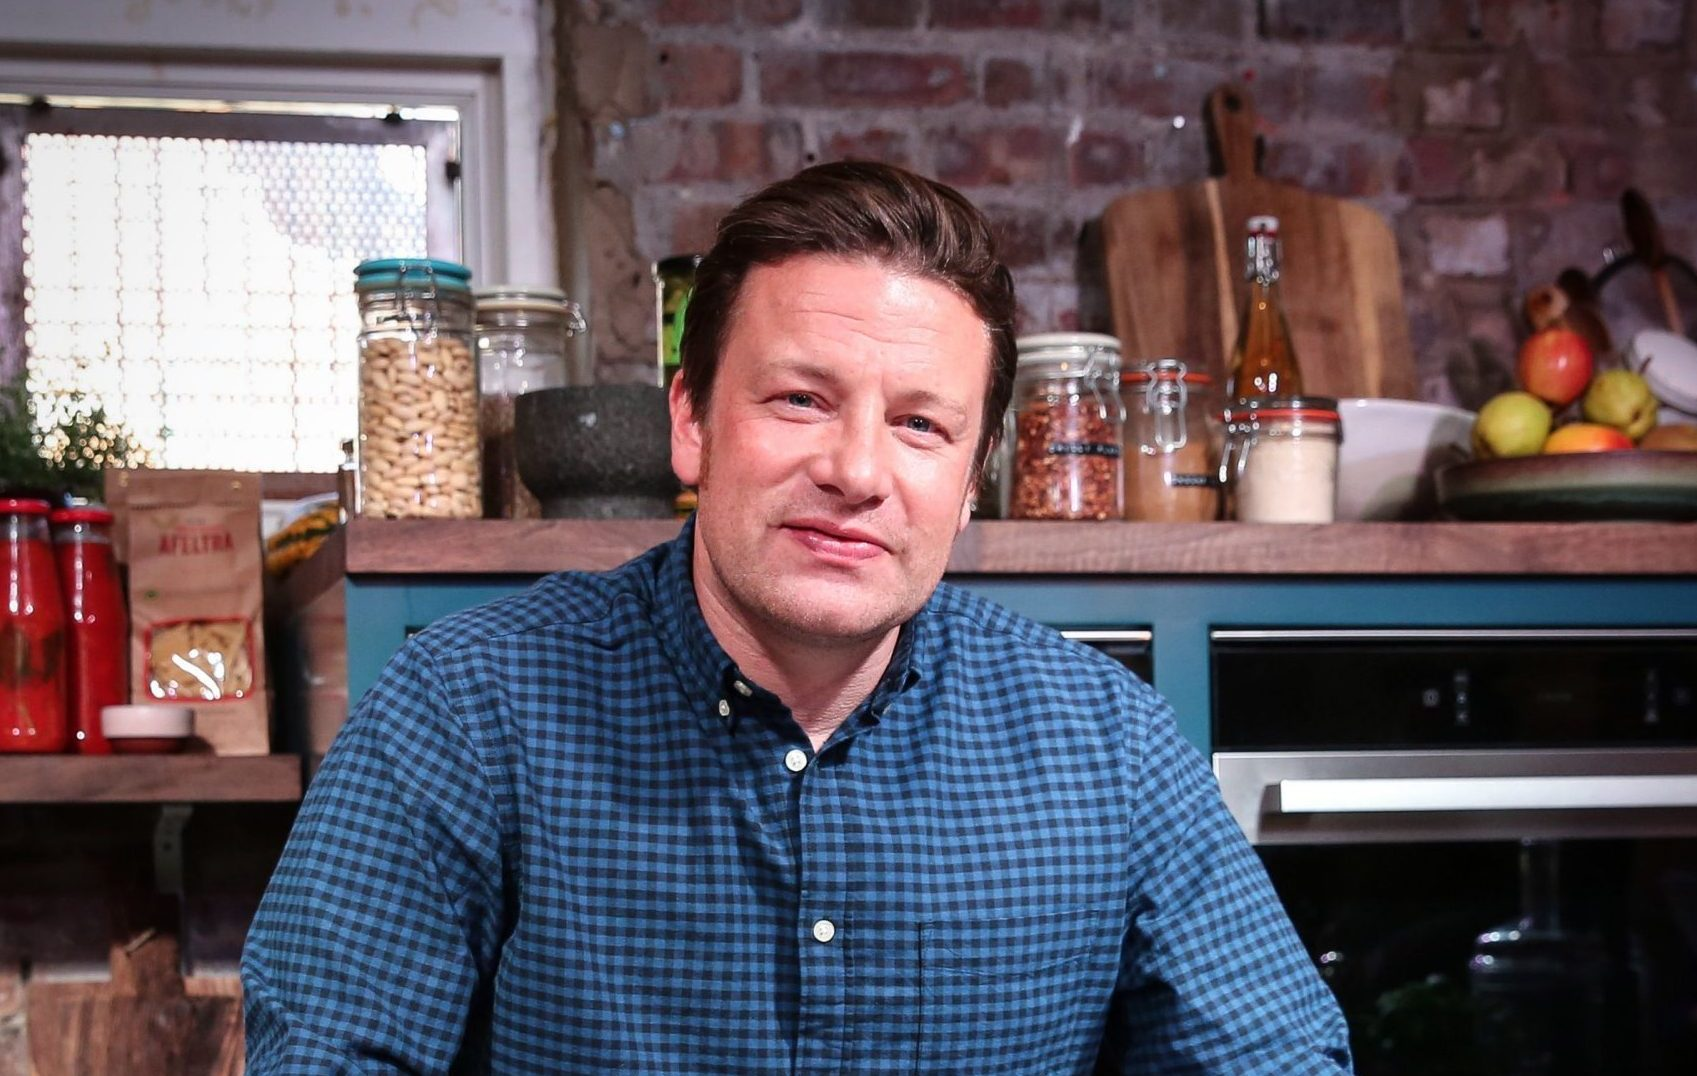 Inside Jamie Oliver's crumbling empire after star tried to save it with £13 million of his own money